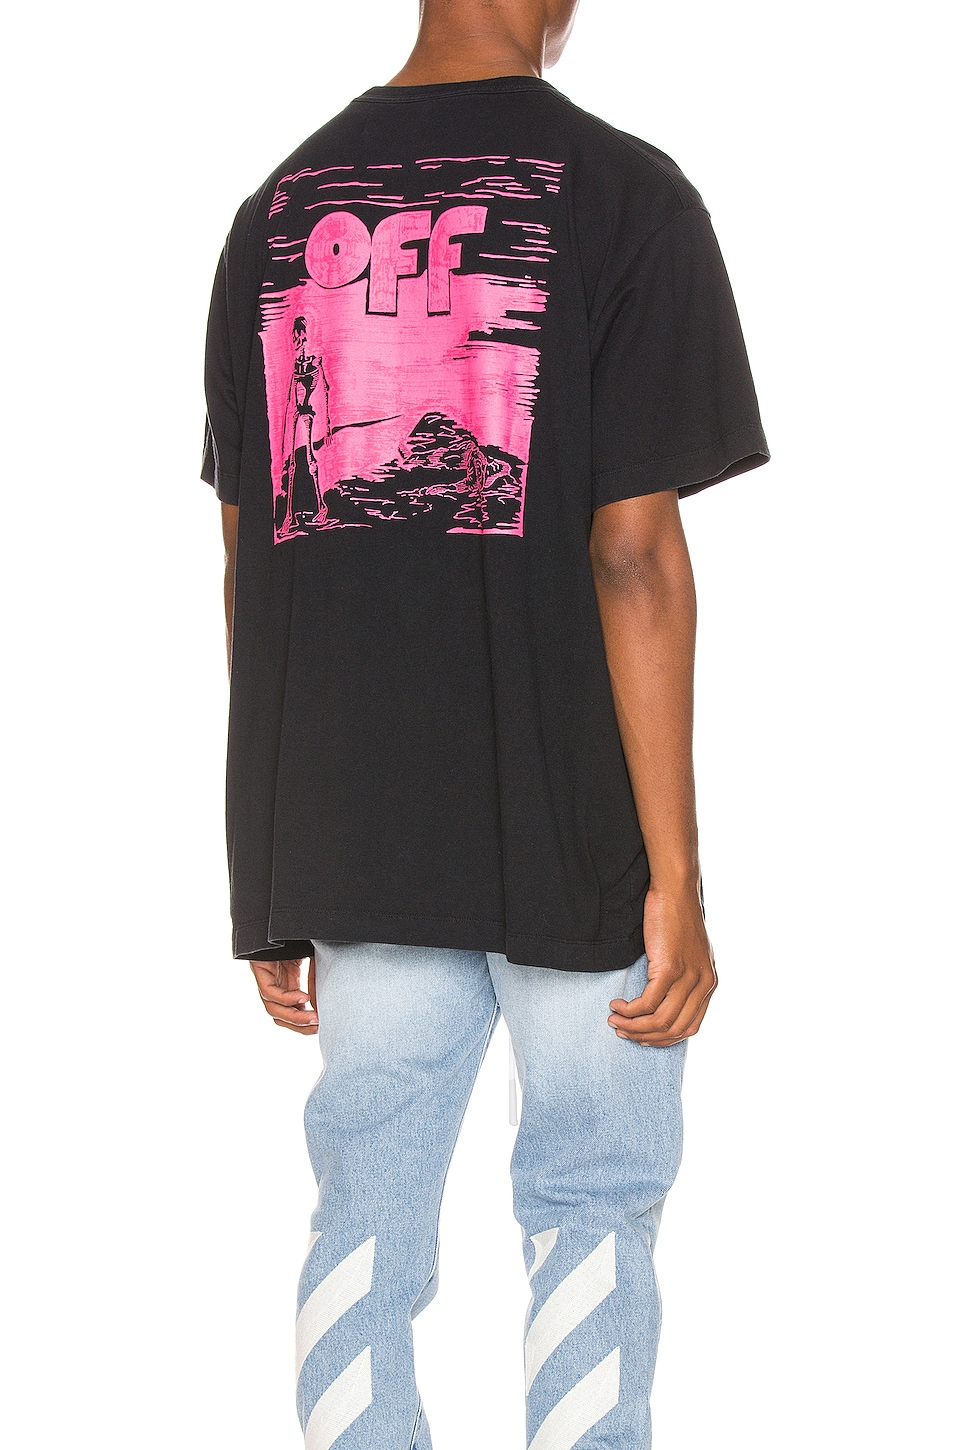 OFF-WHITE Skulls Floating Oversized Tee in Black & Fuchsia